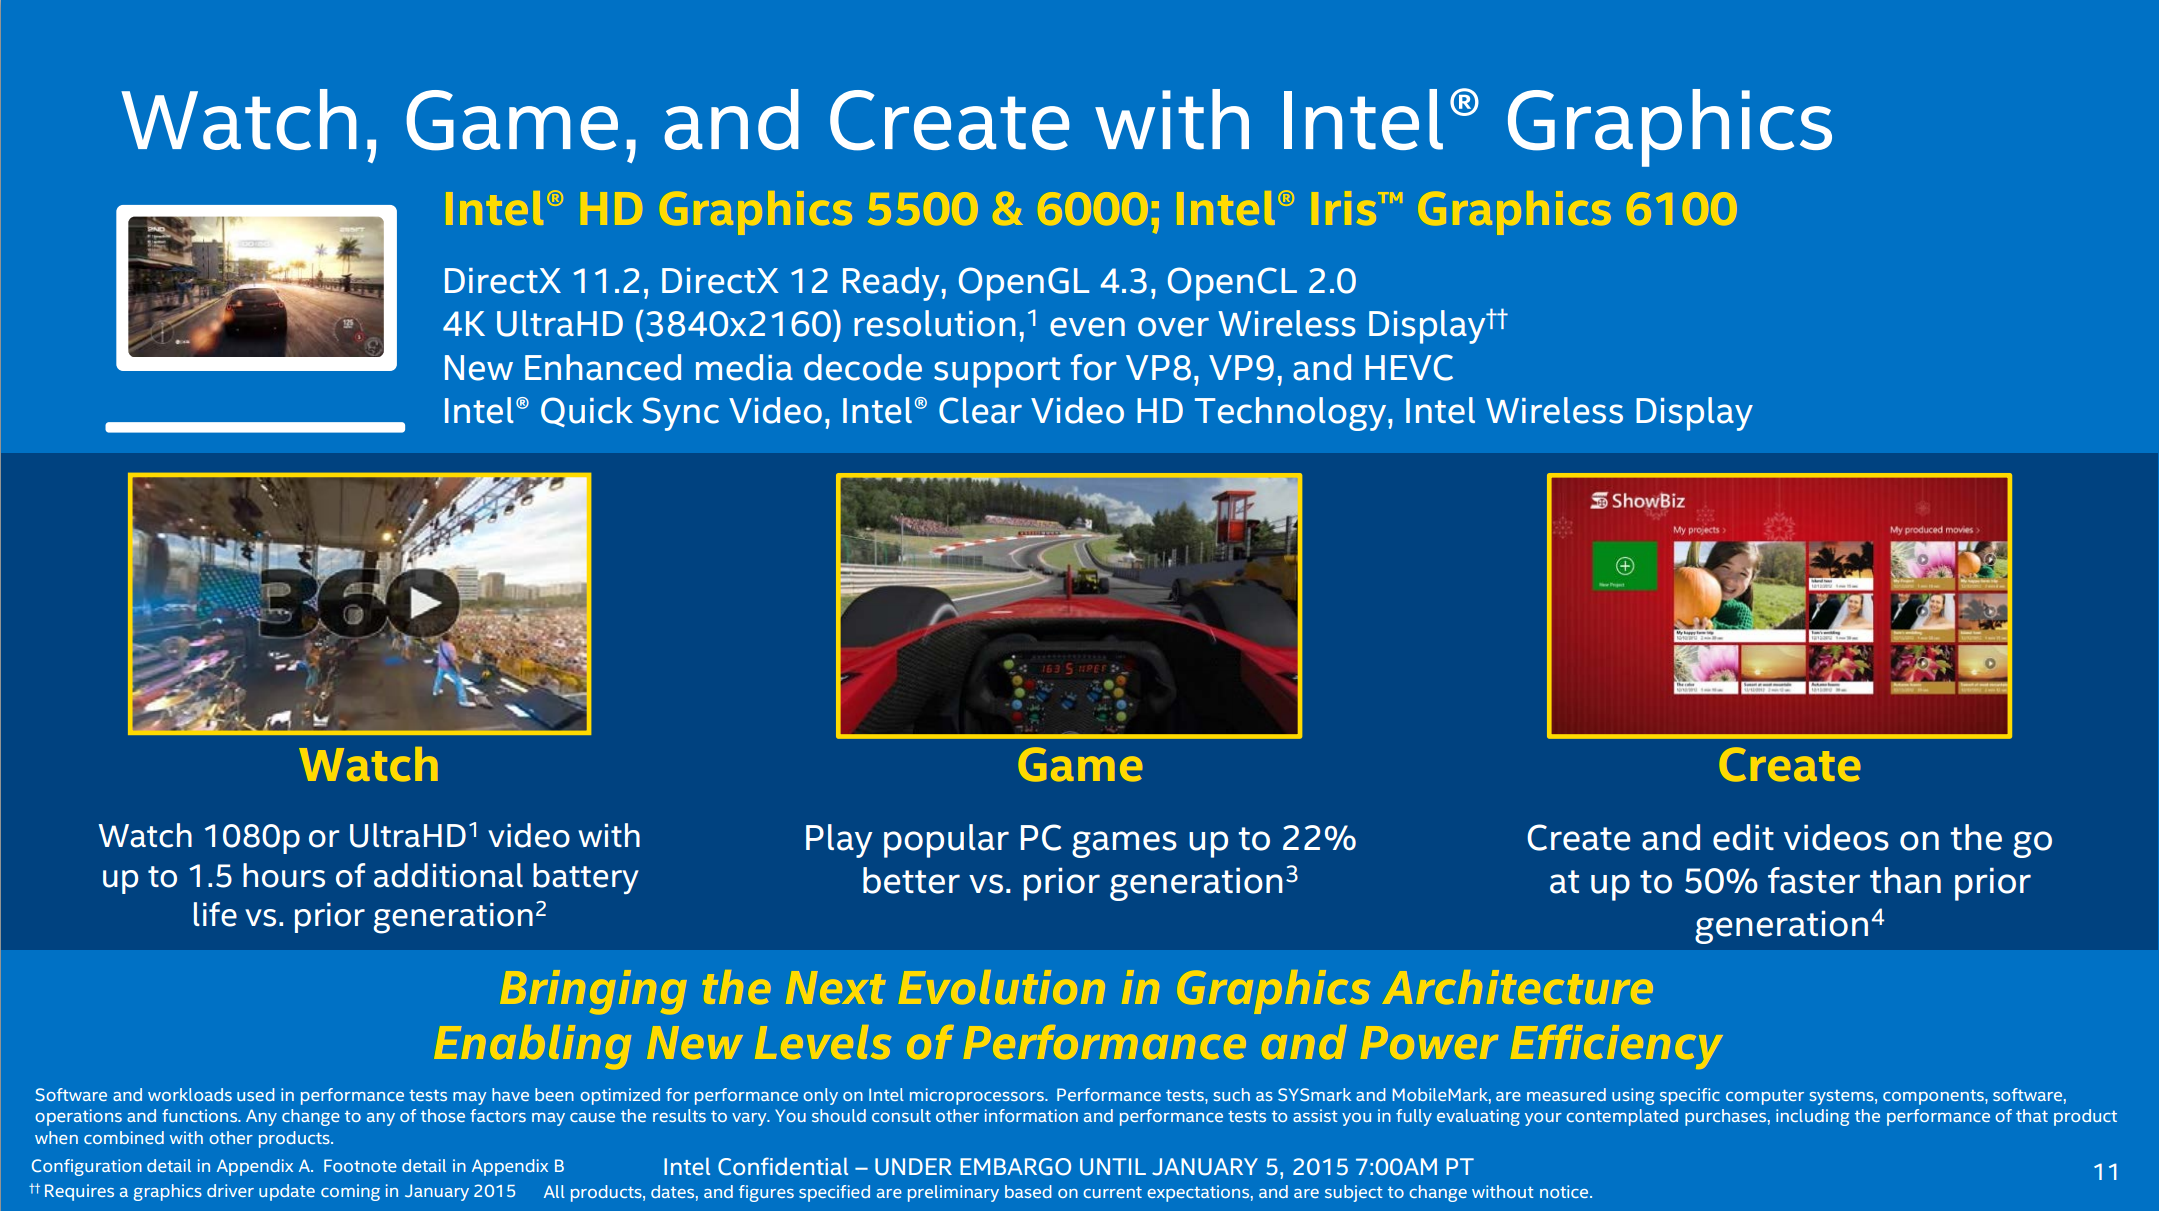 Broadwell GPU Improvements - Intel Releases Broadwell-U: New